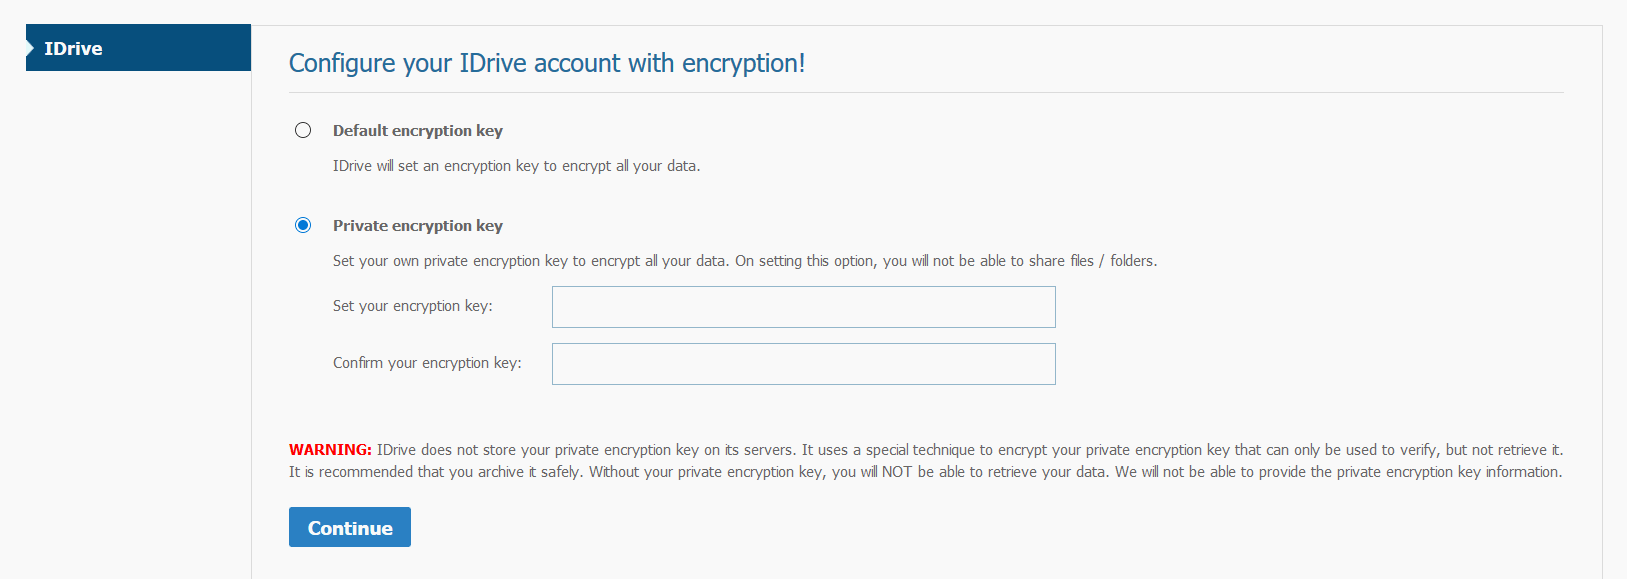 Use Private Encryption id you have